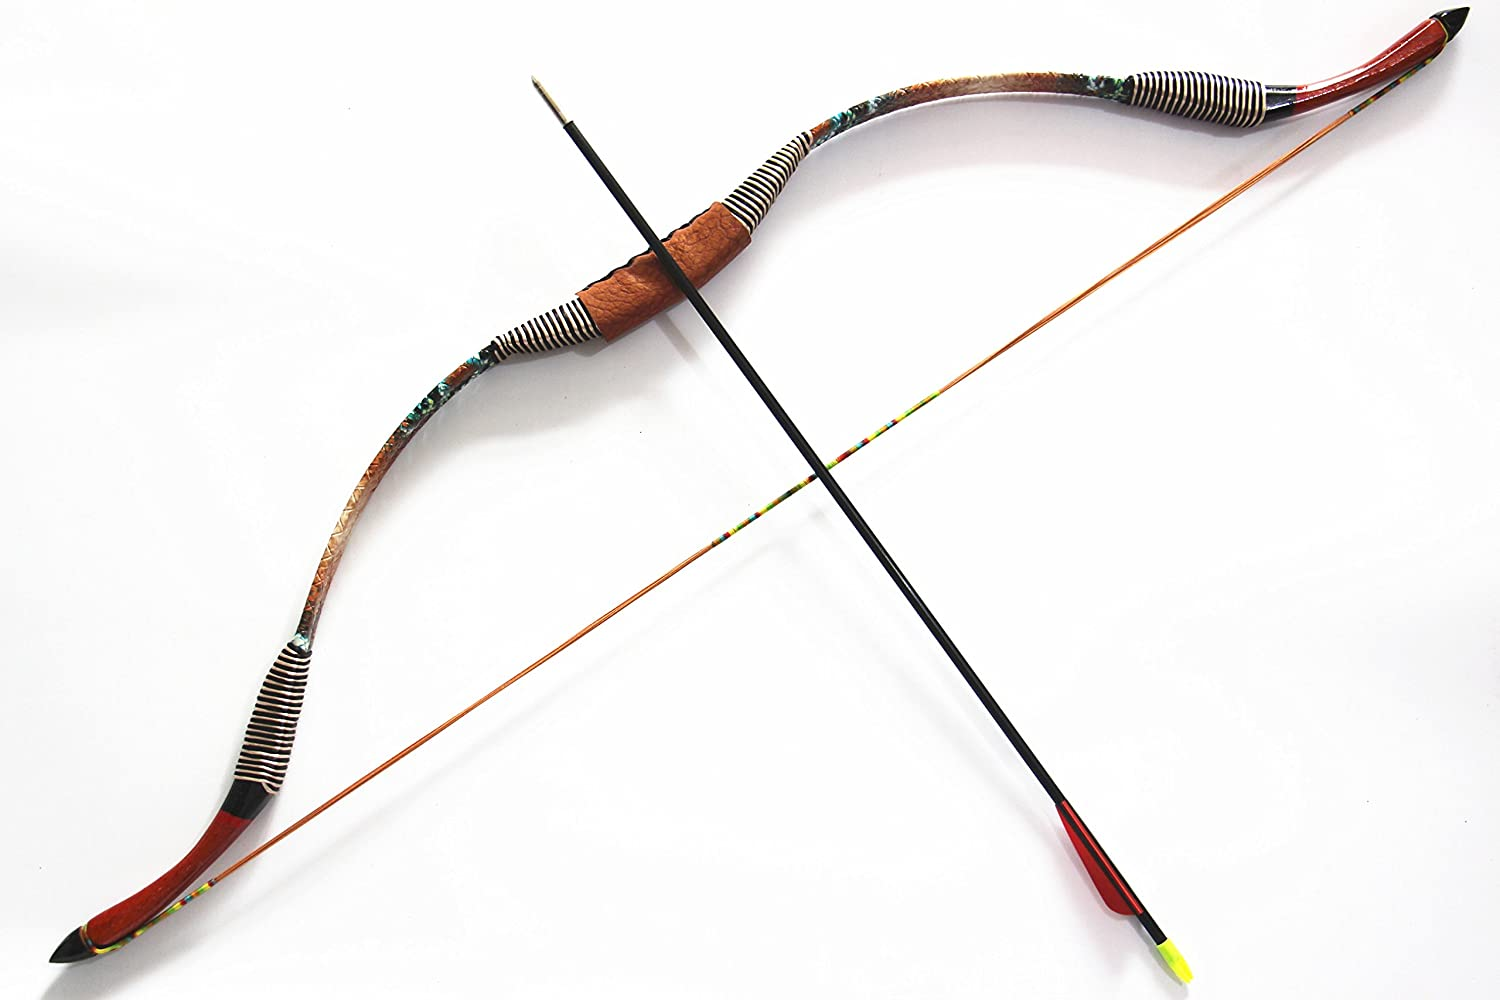 e5e10 12LB Yellow Max Cash special price 74% OFF Handmade Traditional Bow for Yout Recurve Kids